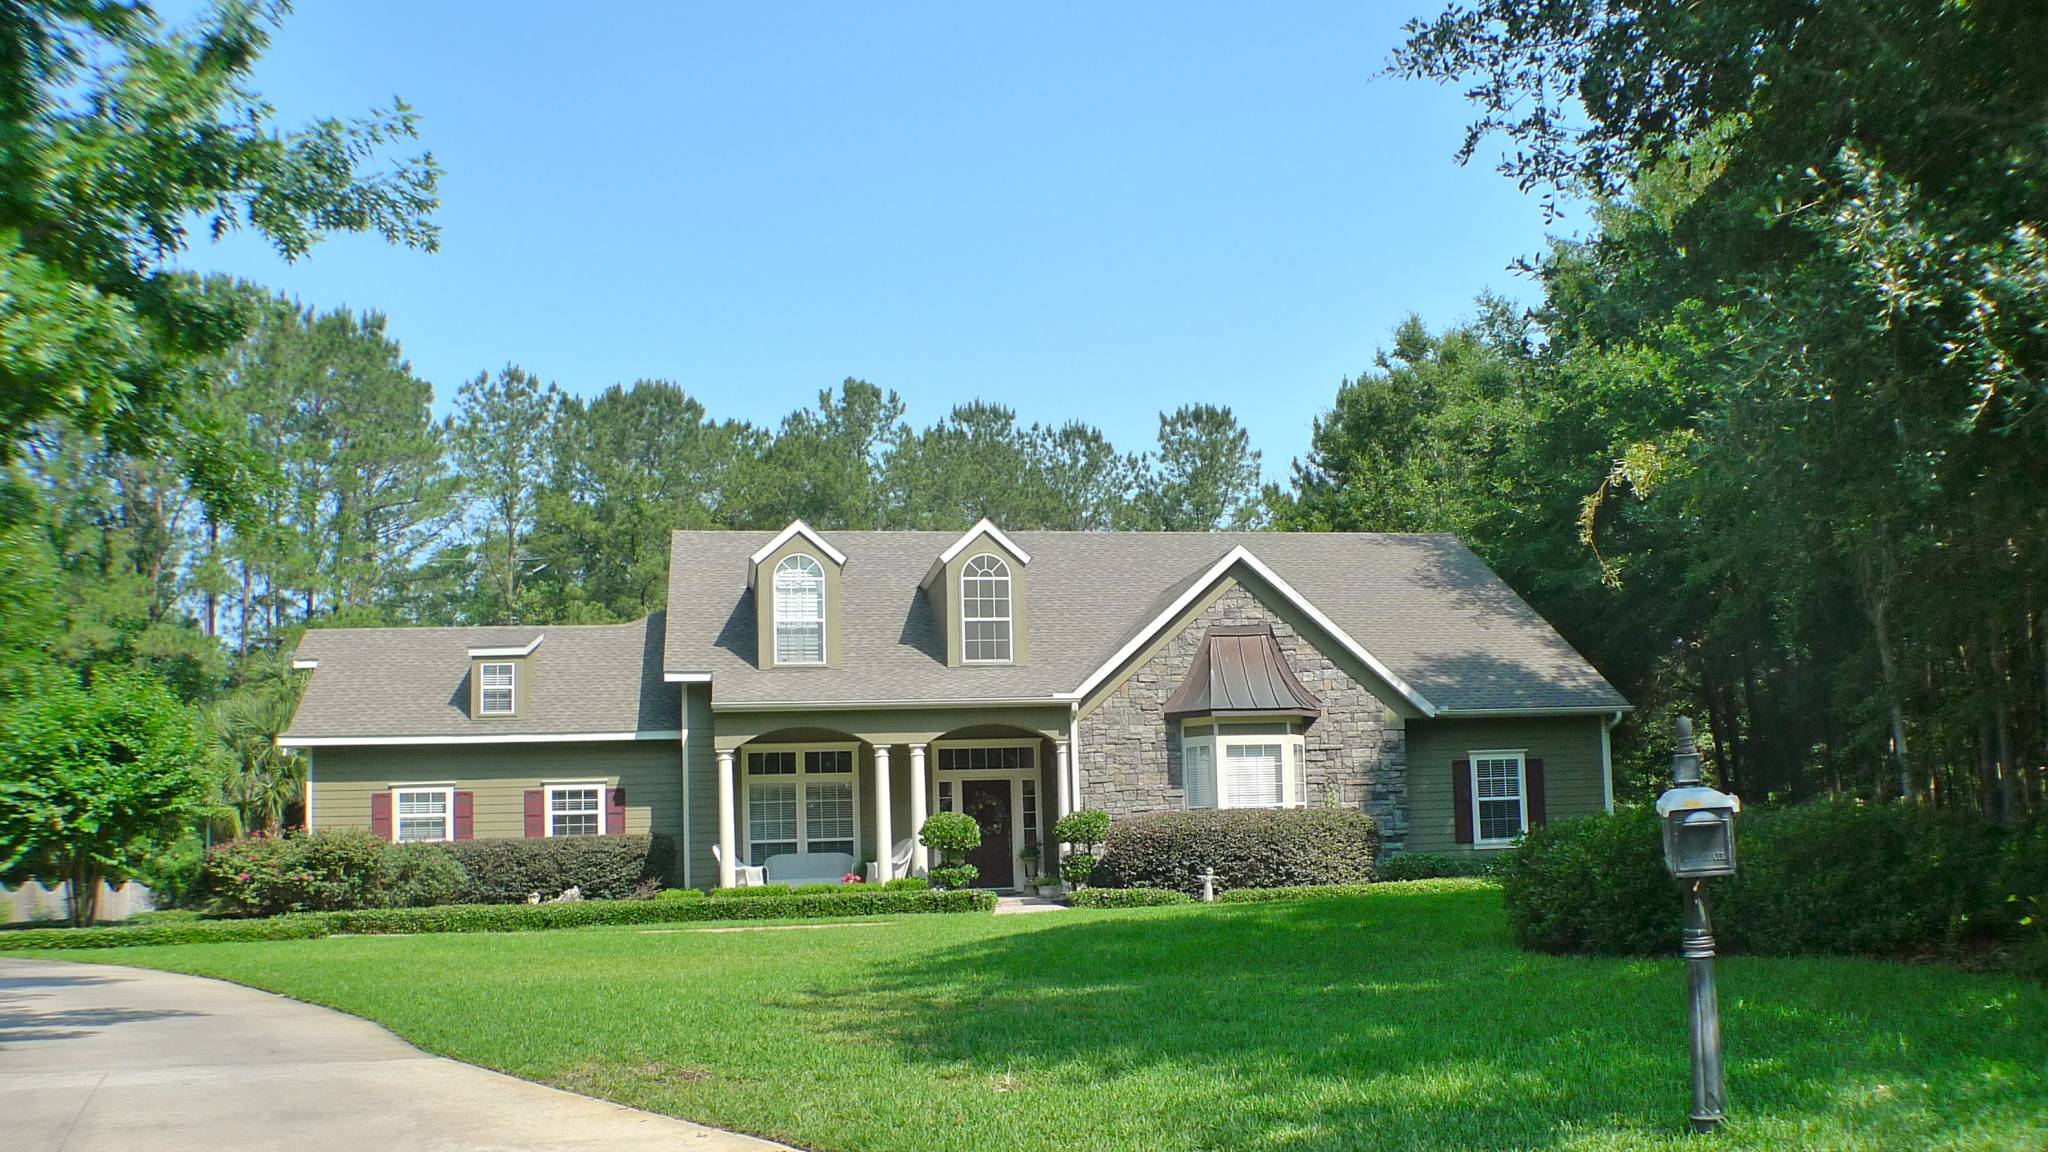 Jockey club gainesville fl gainesville life for Big houses in florida